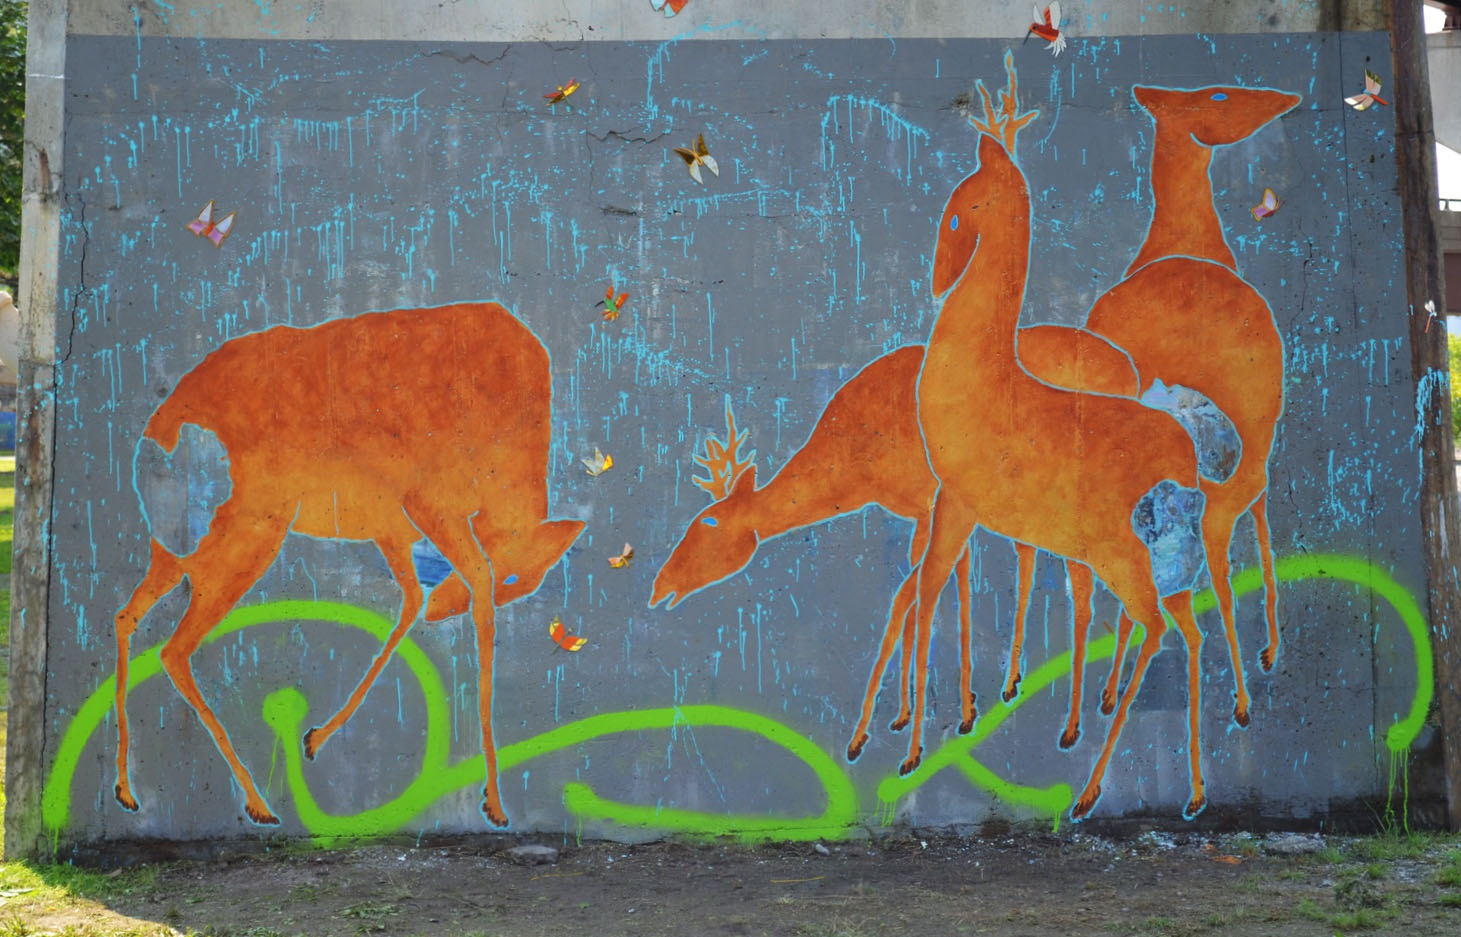 ShinShin-Street-Art-Living-Walls-Deer-with-Wings-Glass.jpg